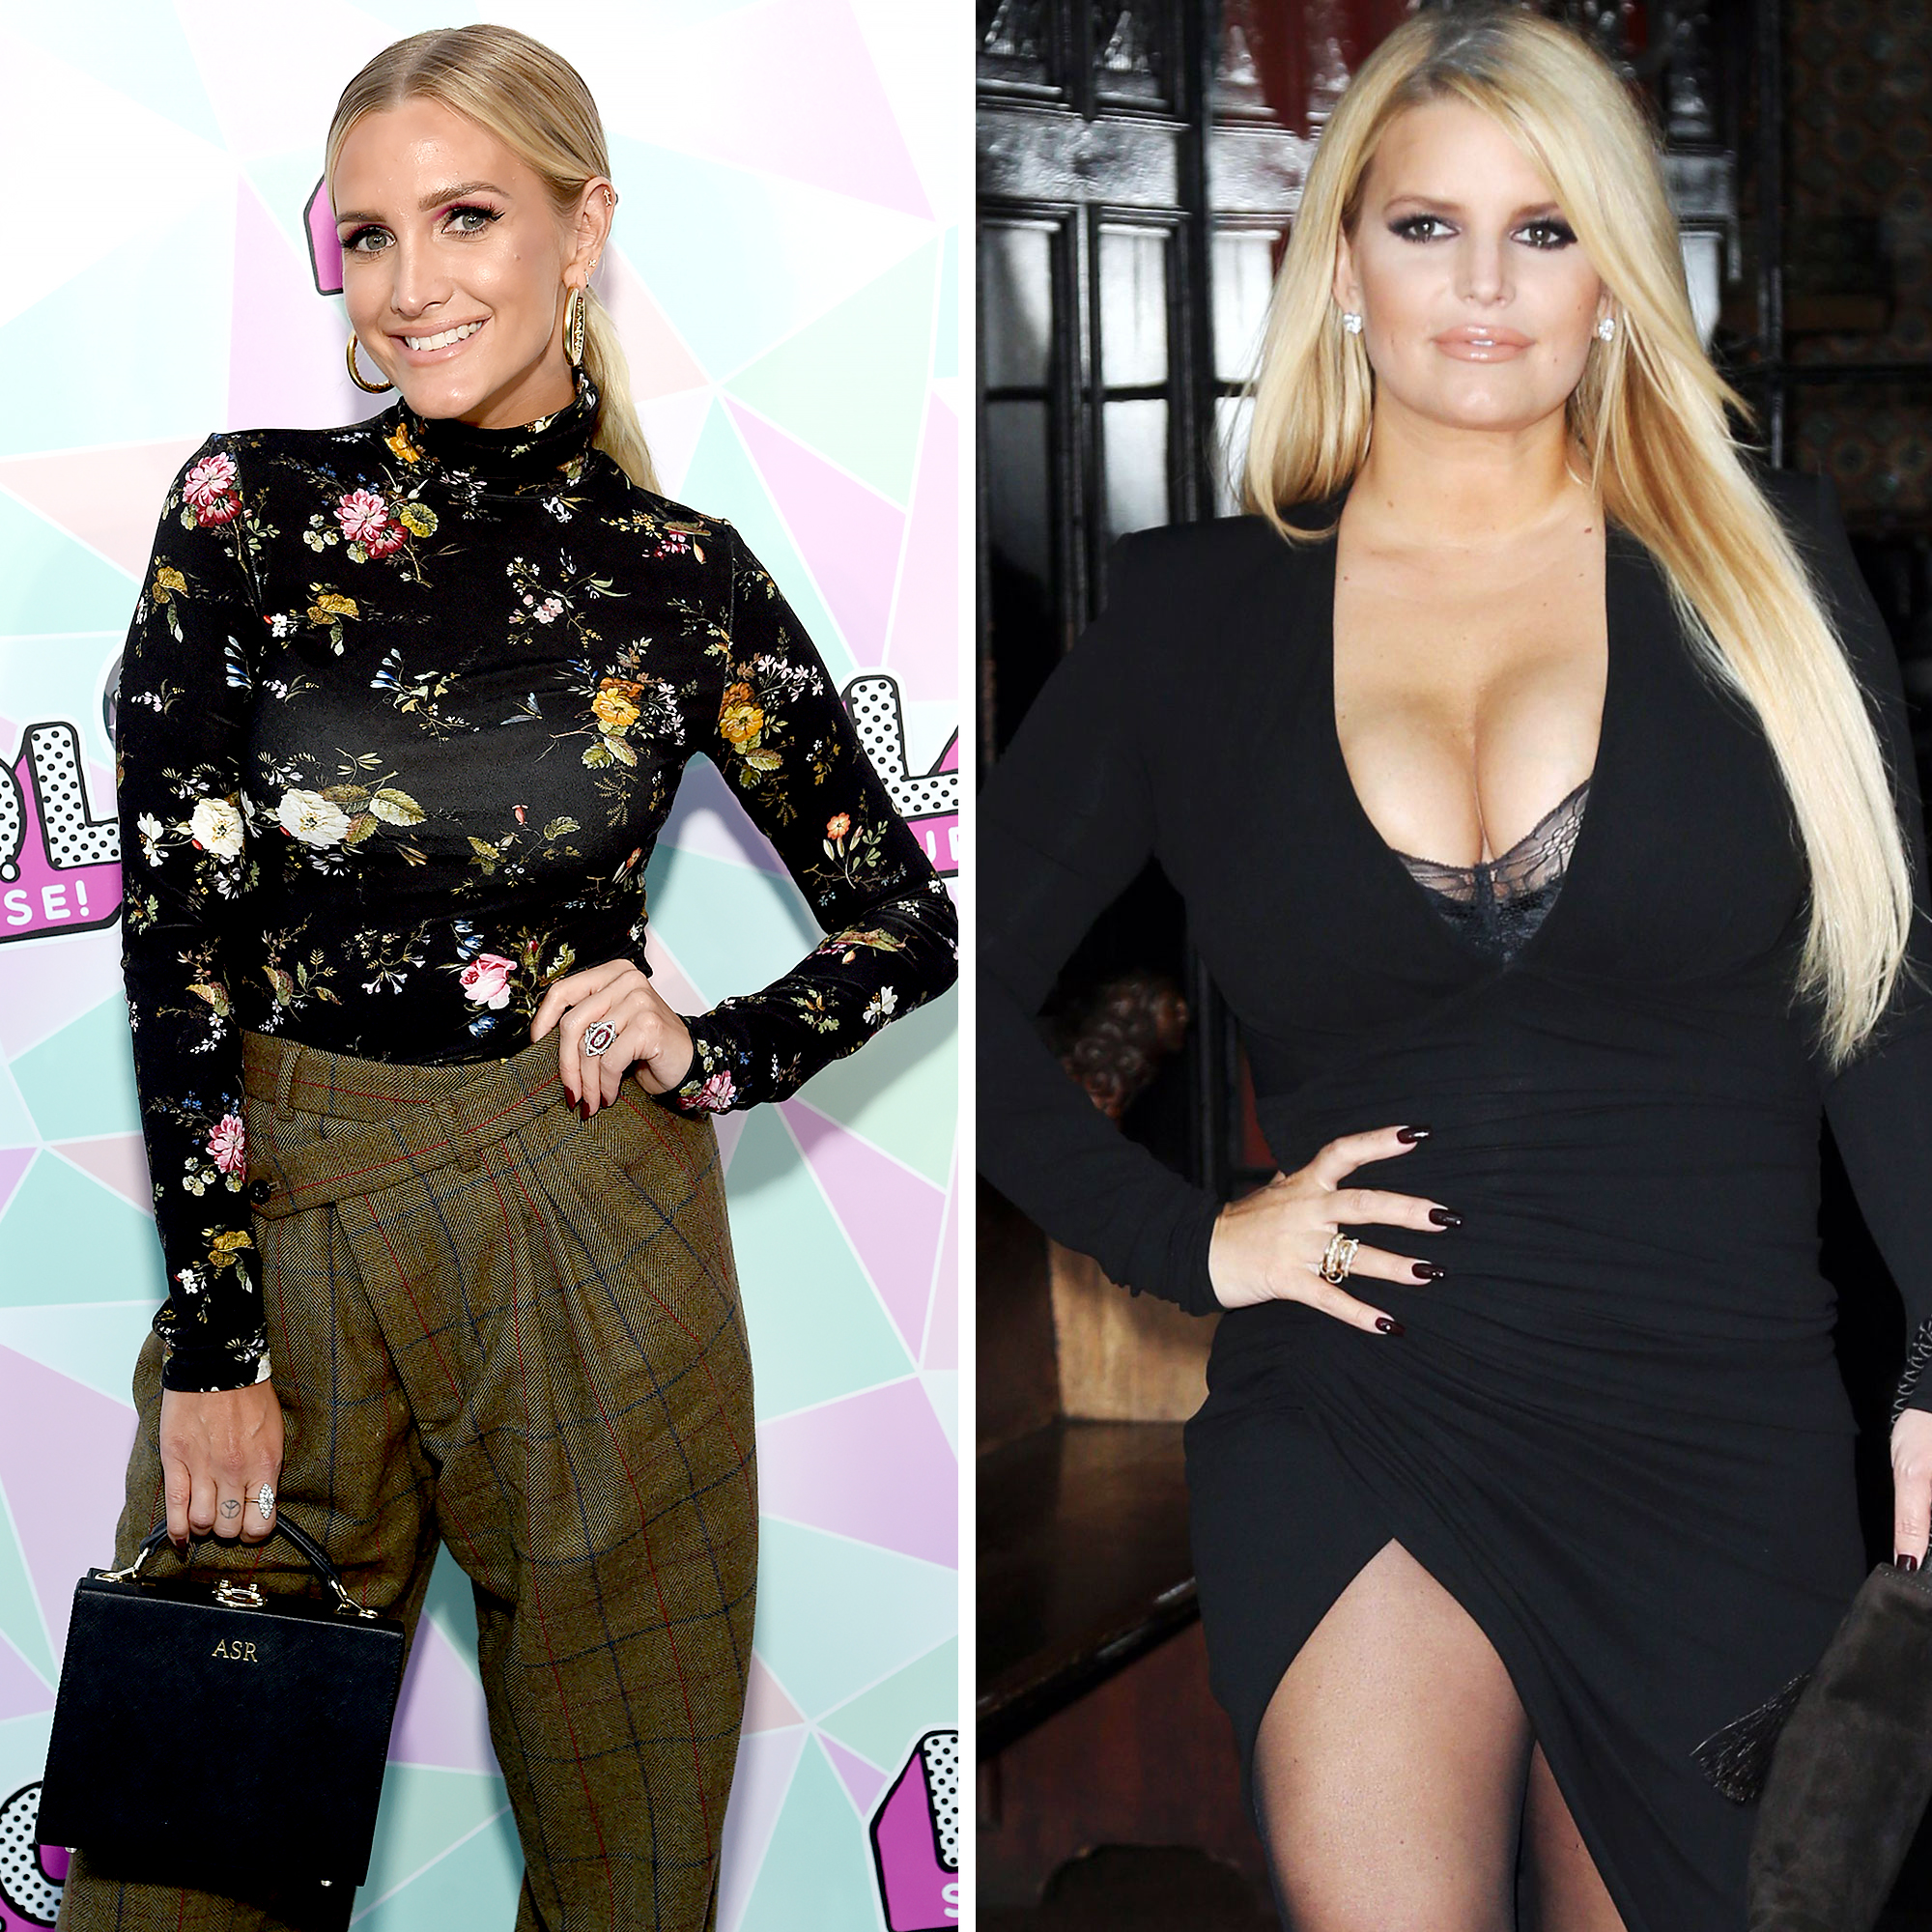 Ashlee-Simpson-Gives-the-Secret-to-Sis-Jessica-Simpsons-Weight-Loss 1